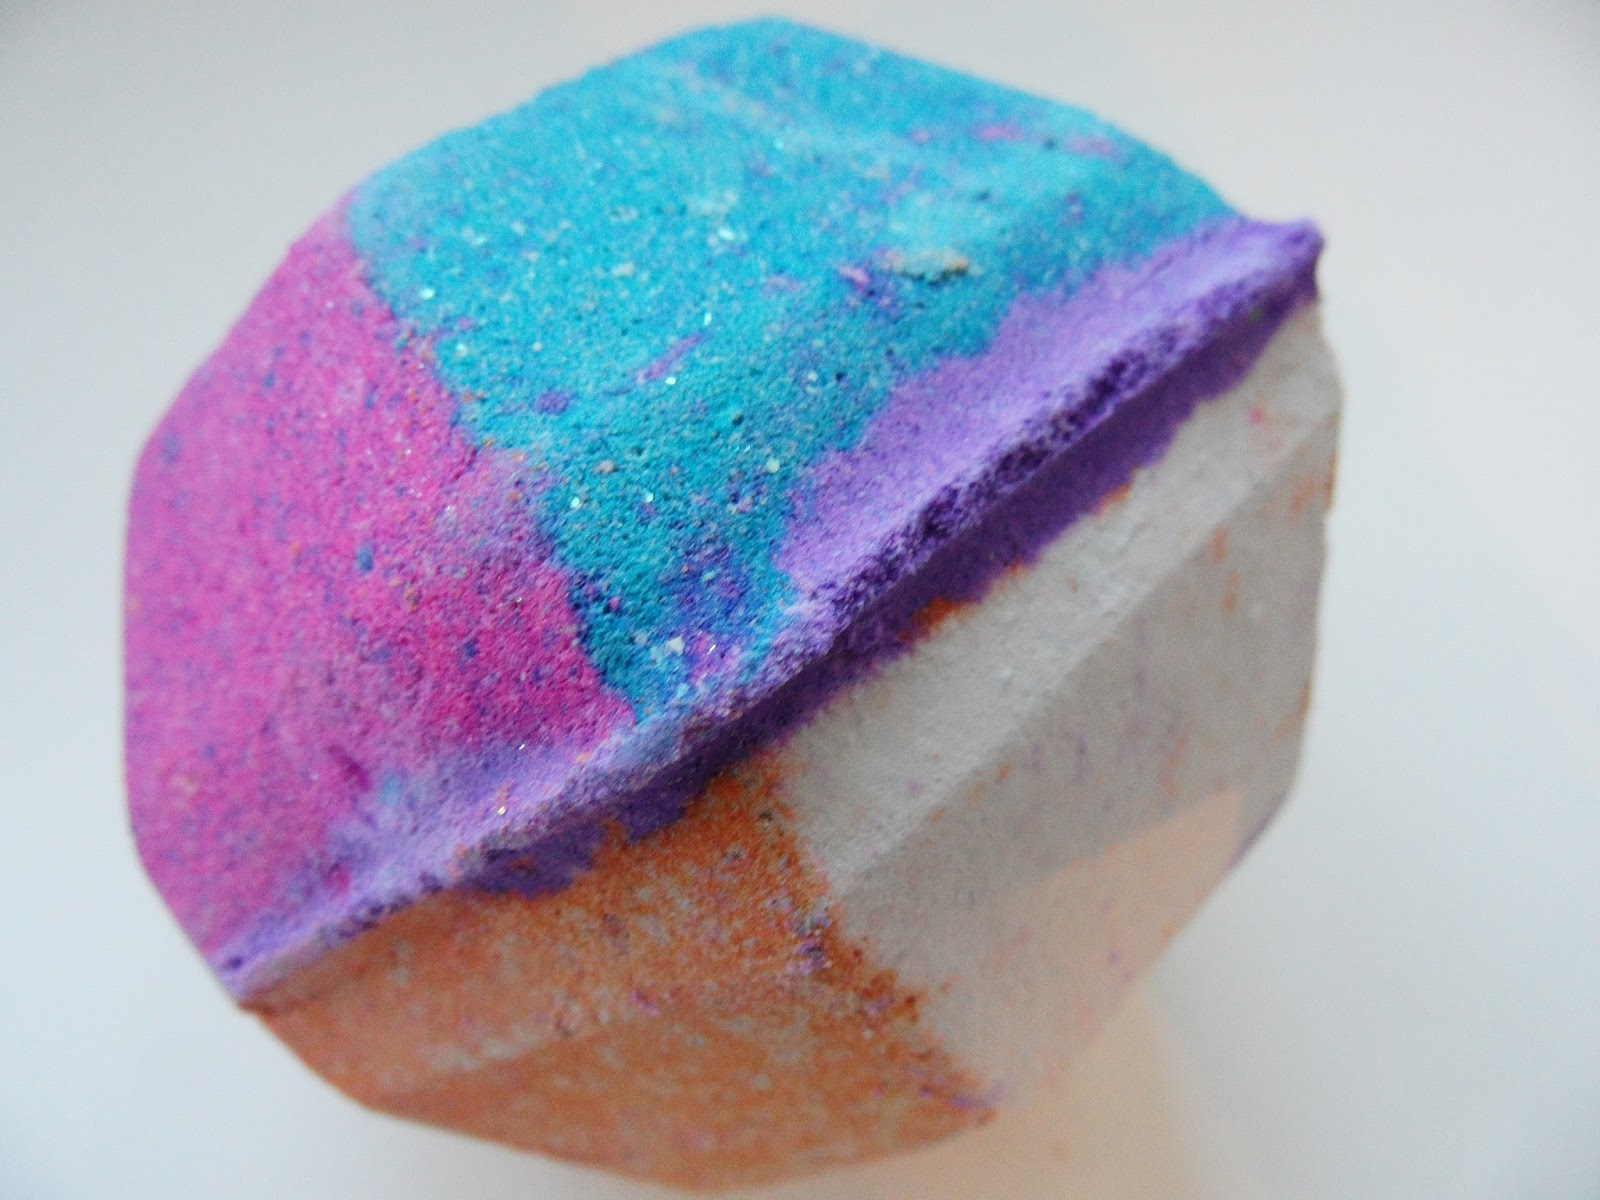 LUSH HAUL Eyelinerflicks Oct 2015 The Experamintor Bath Bomb